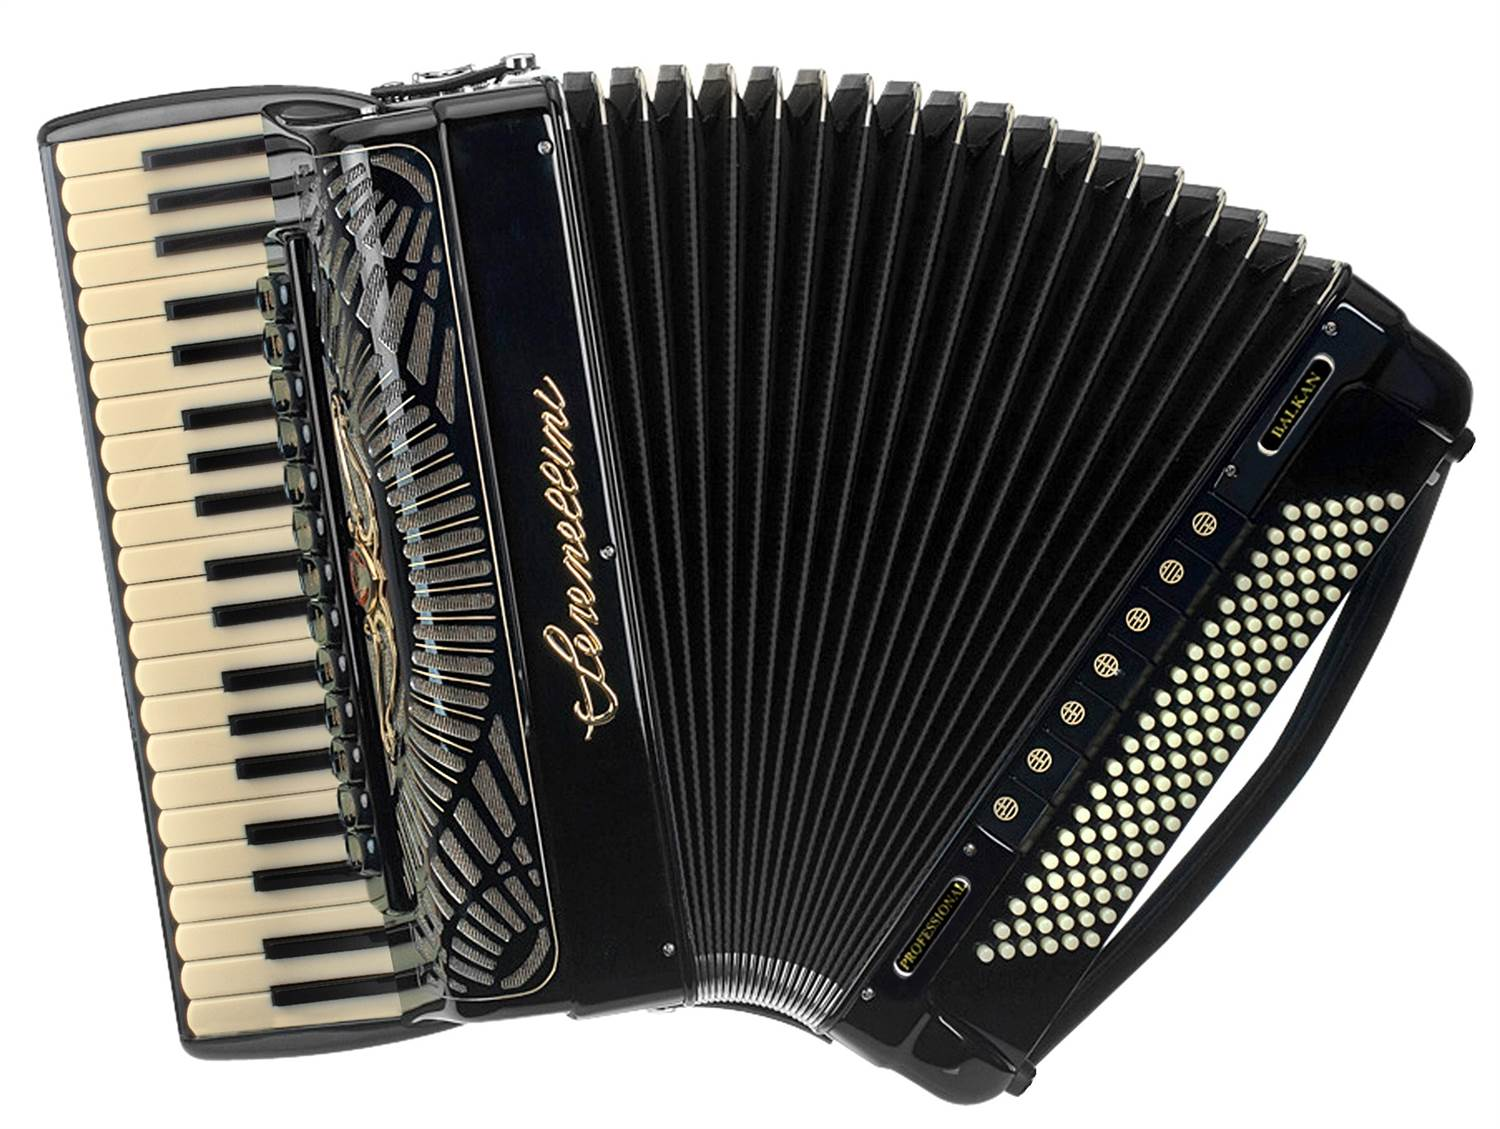 Serenellini Cassotto Imperator Balkan 2+2 piano accordion